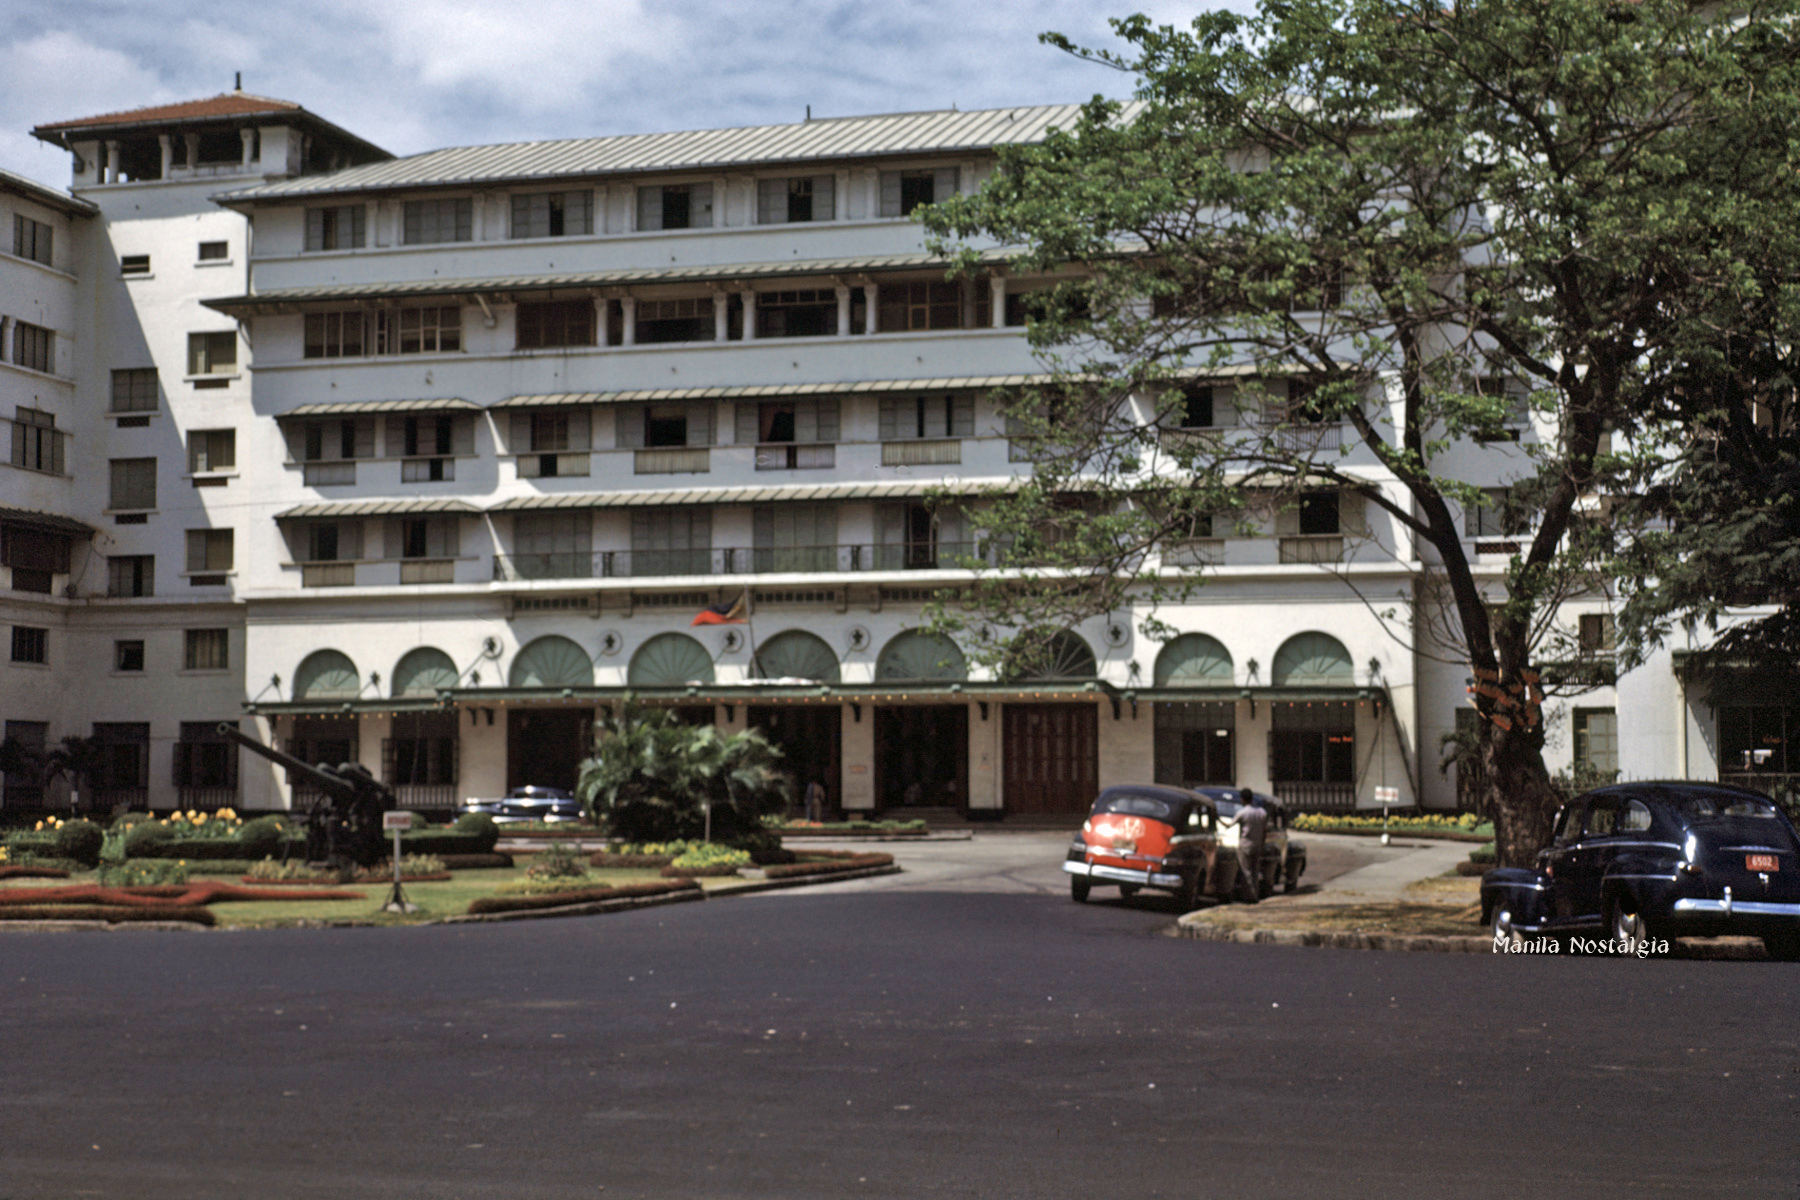 Completely restored, the Manila Hotel glistened once again - 1948